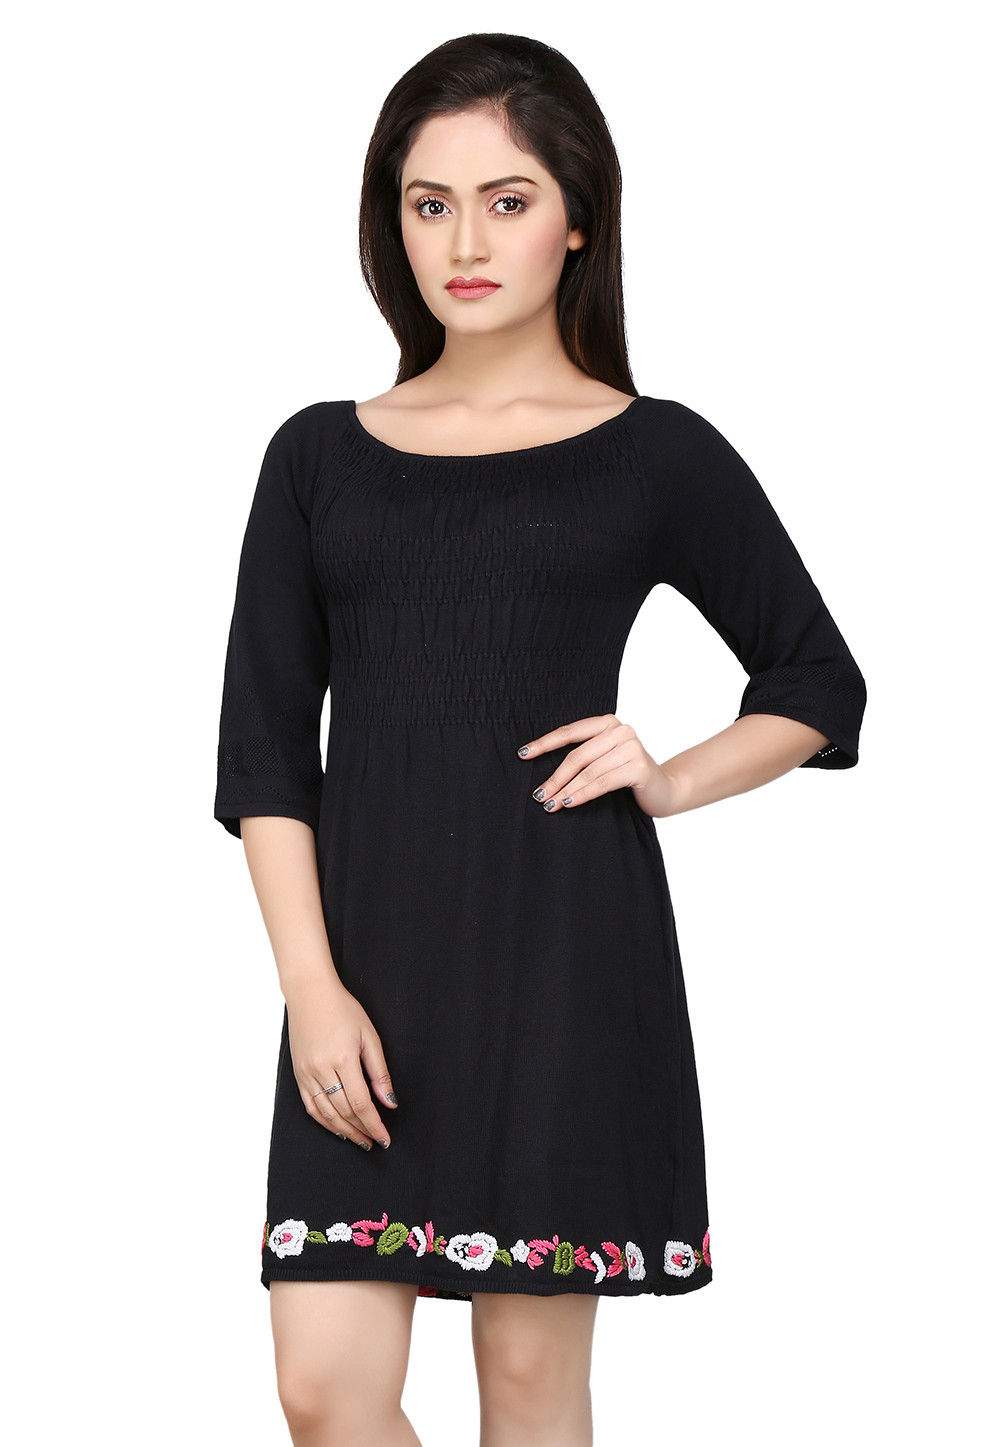 Plain Woolen Dress in Black